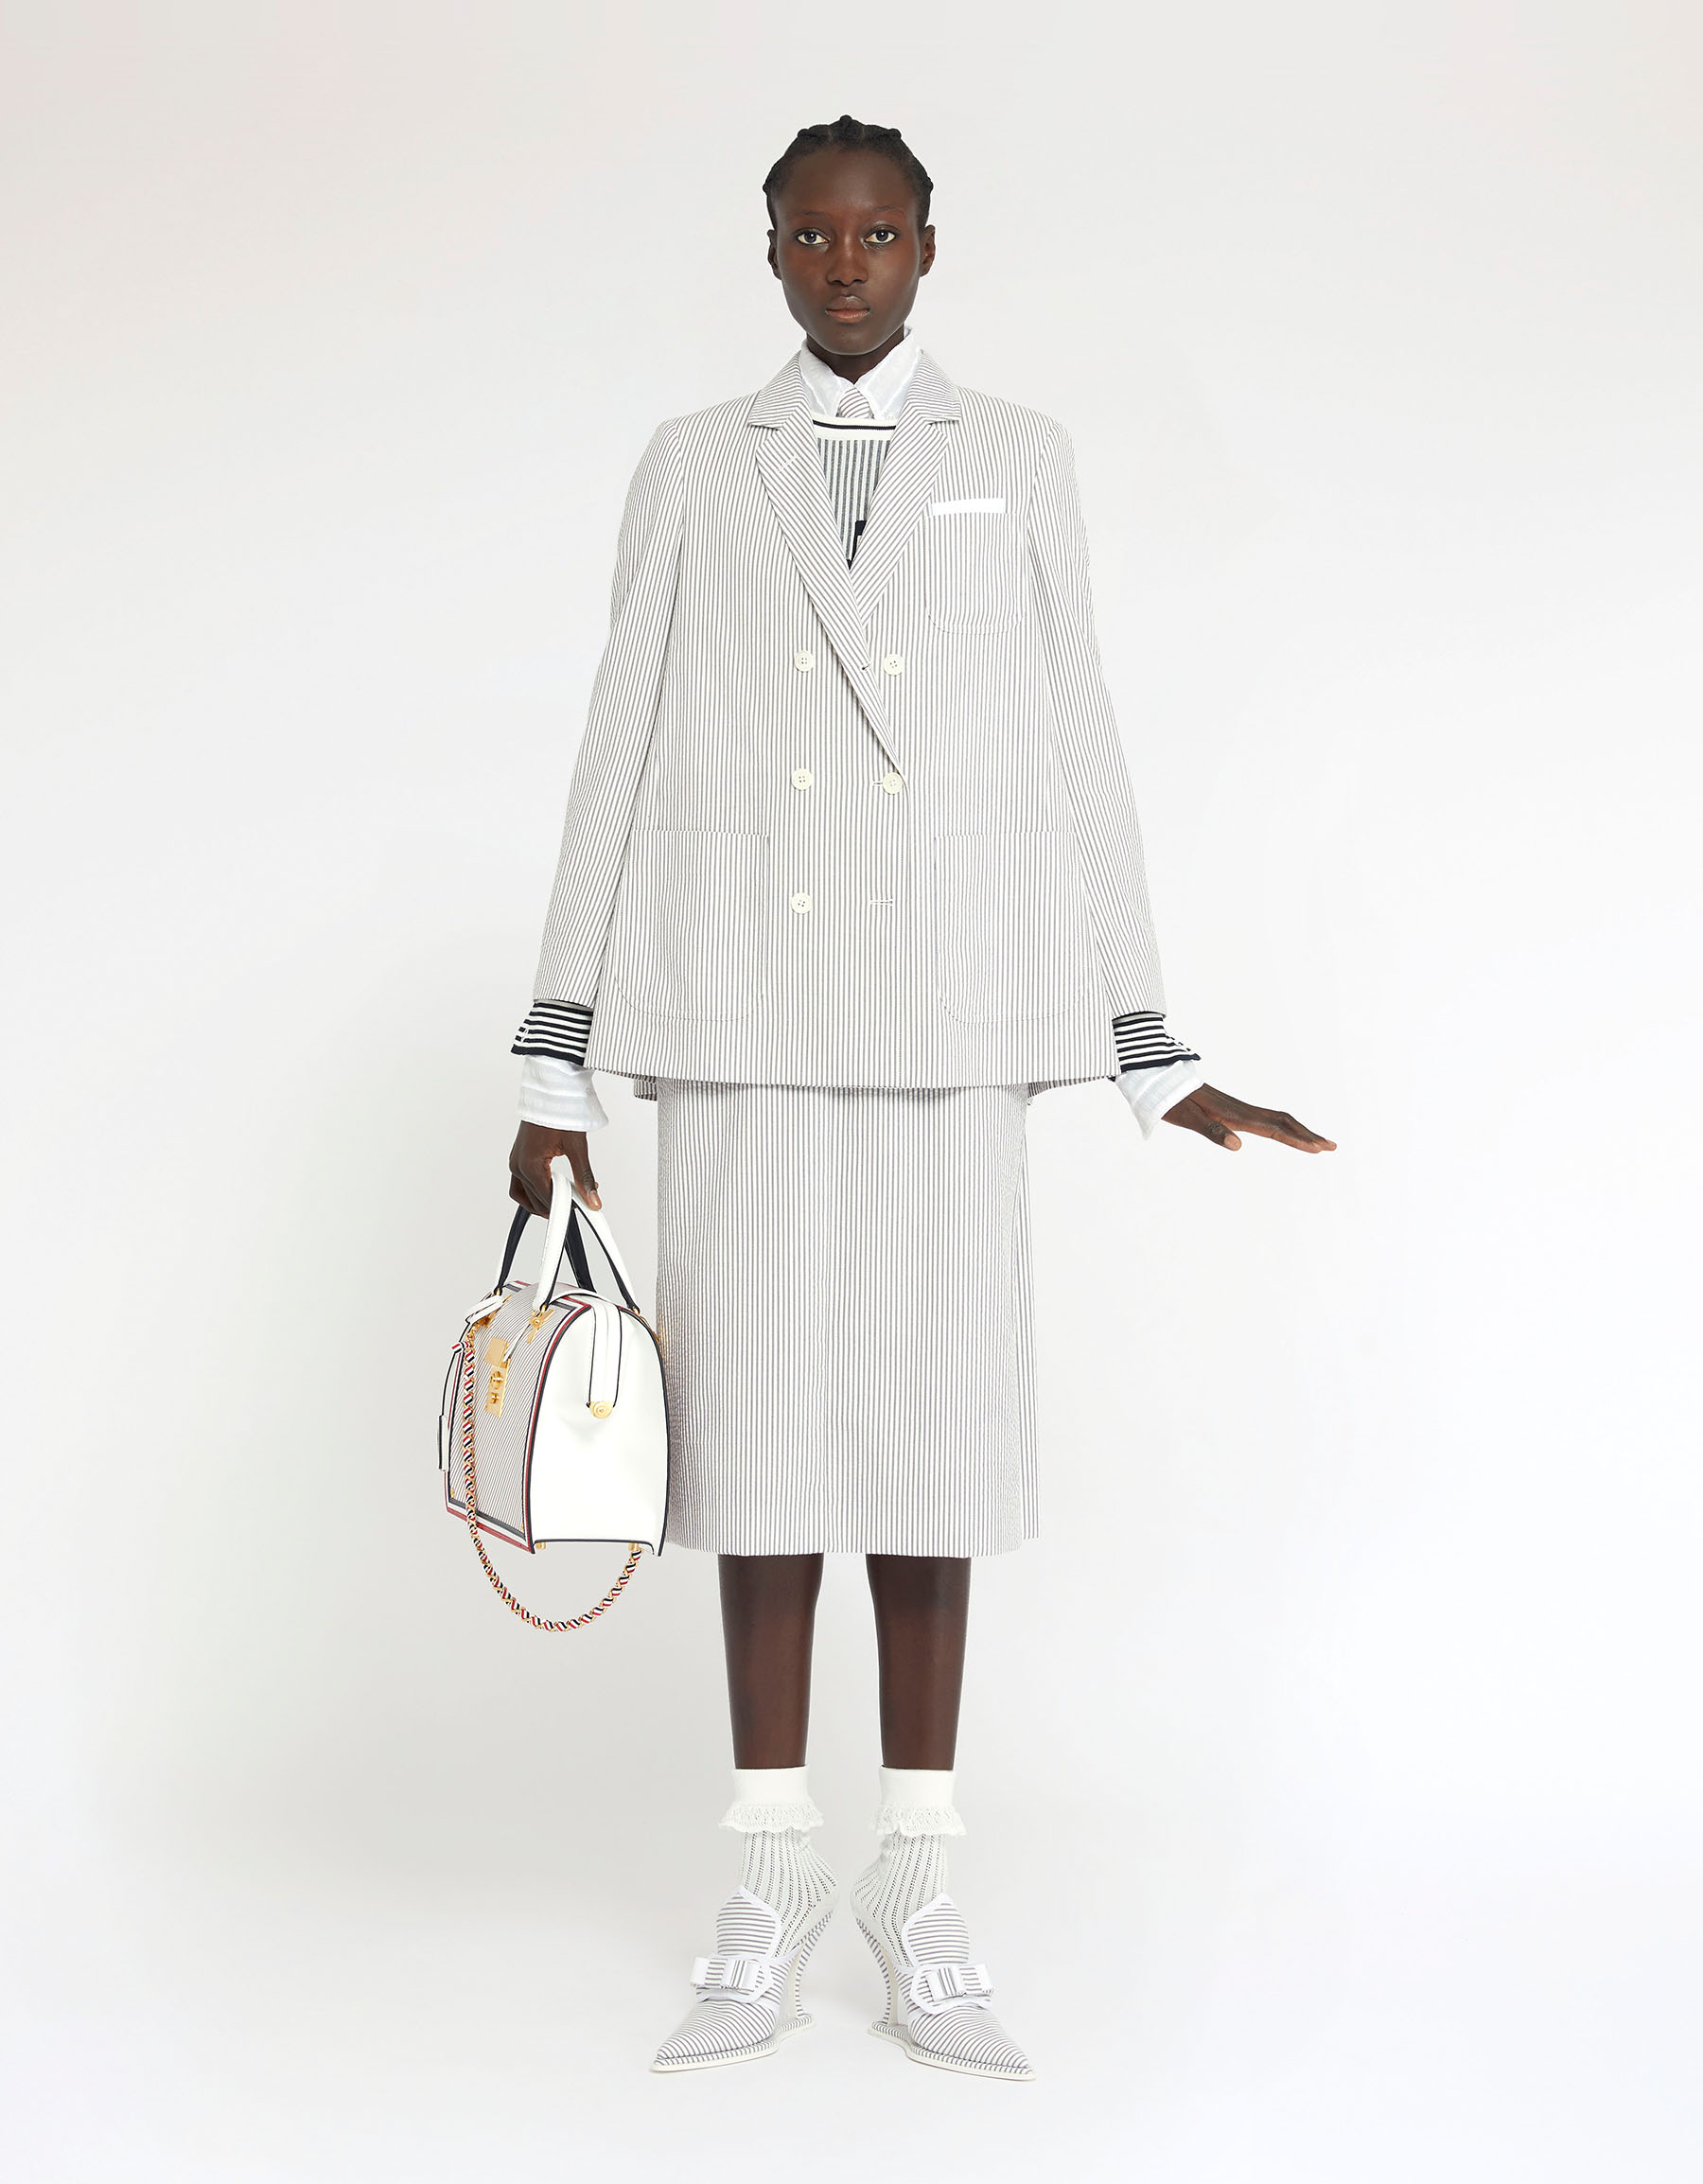 In the World of Thom Browne Making of the Spring 2020 Collection Fashion Photography